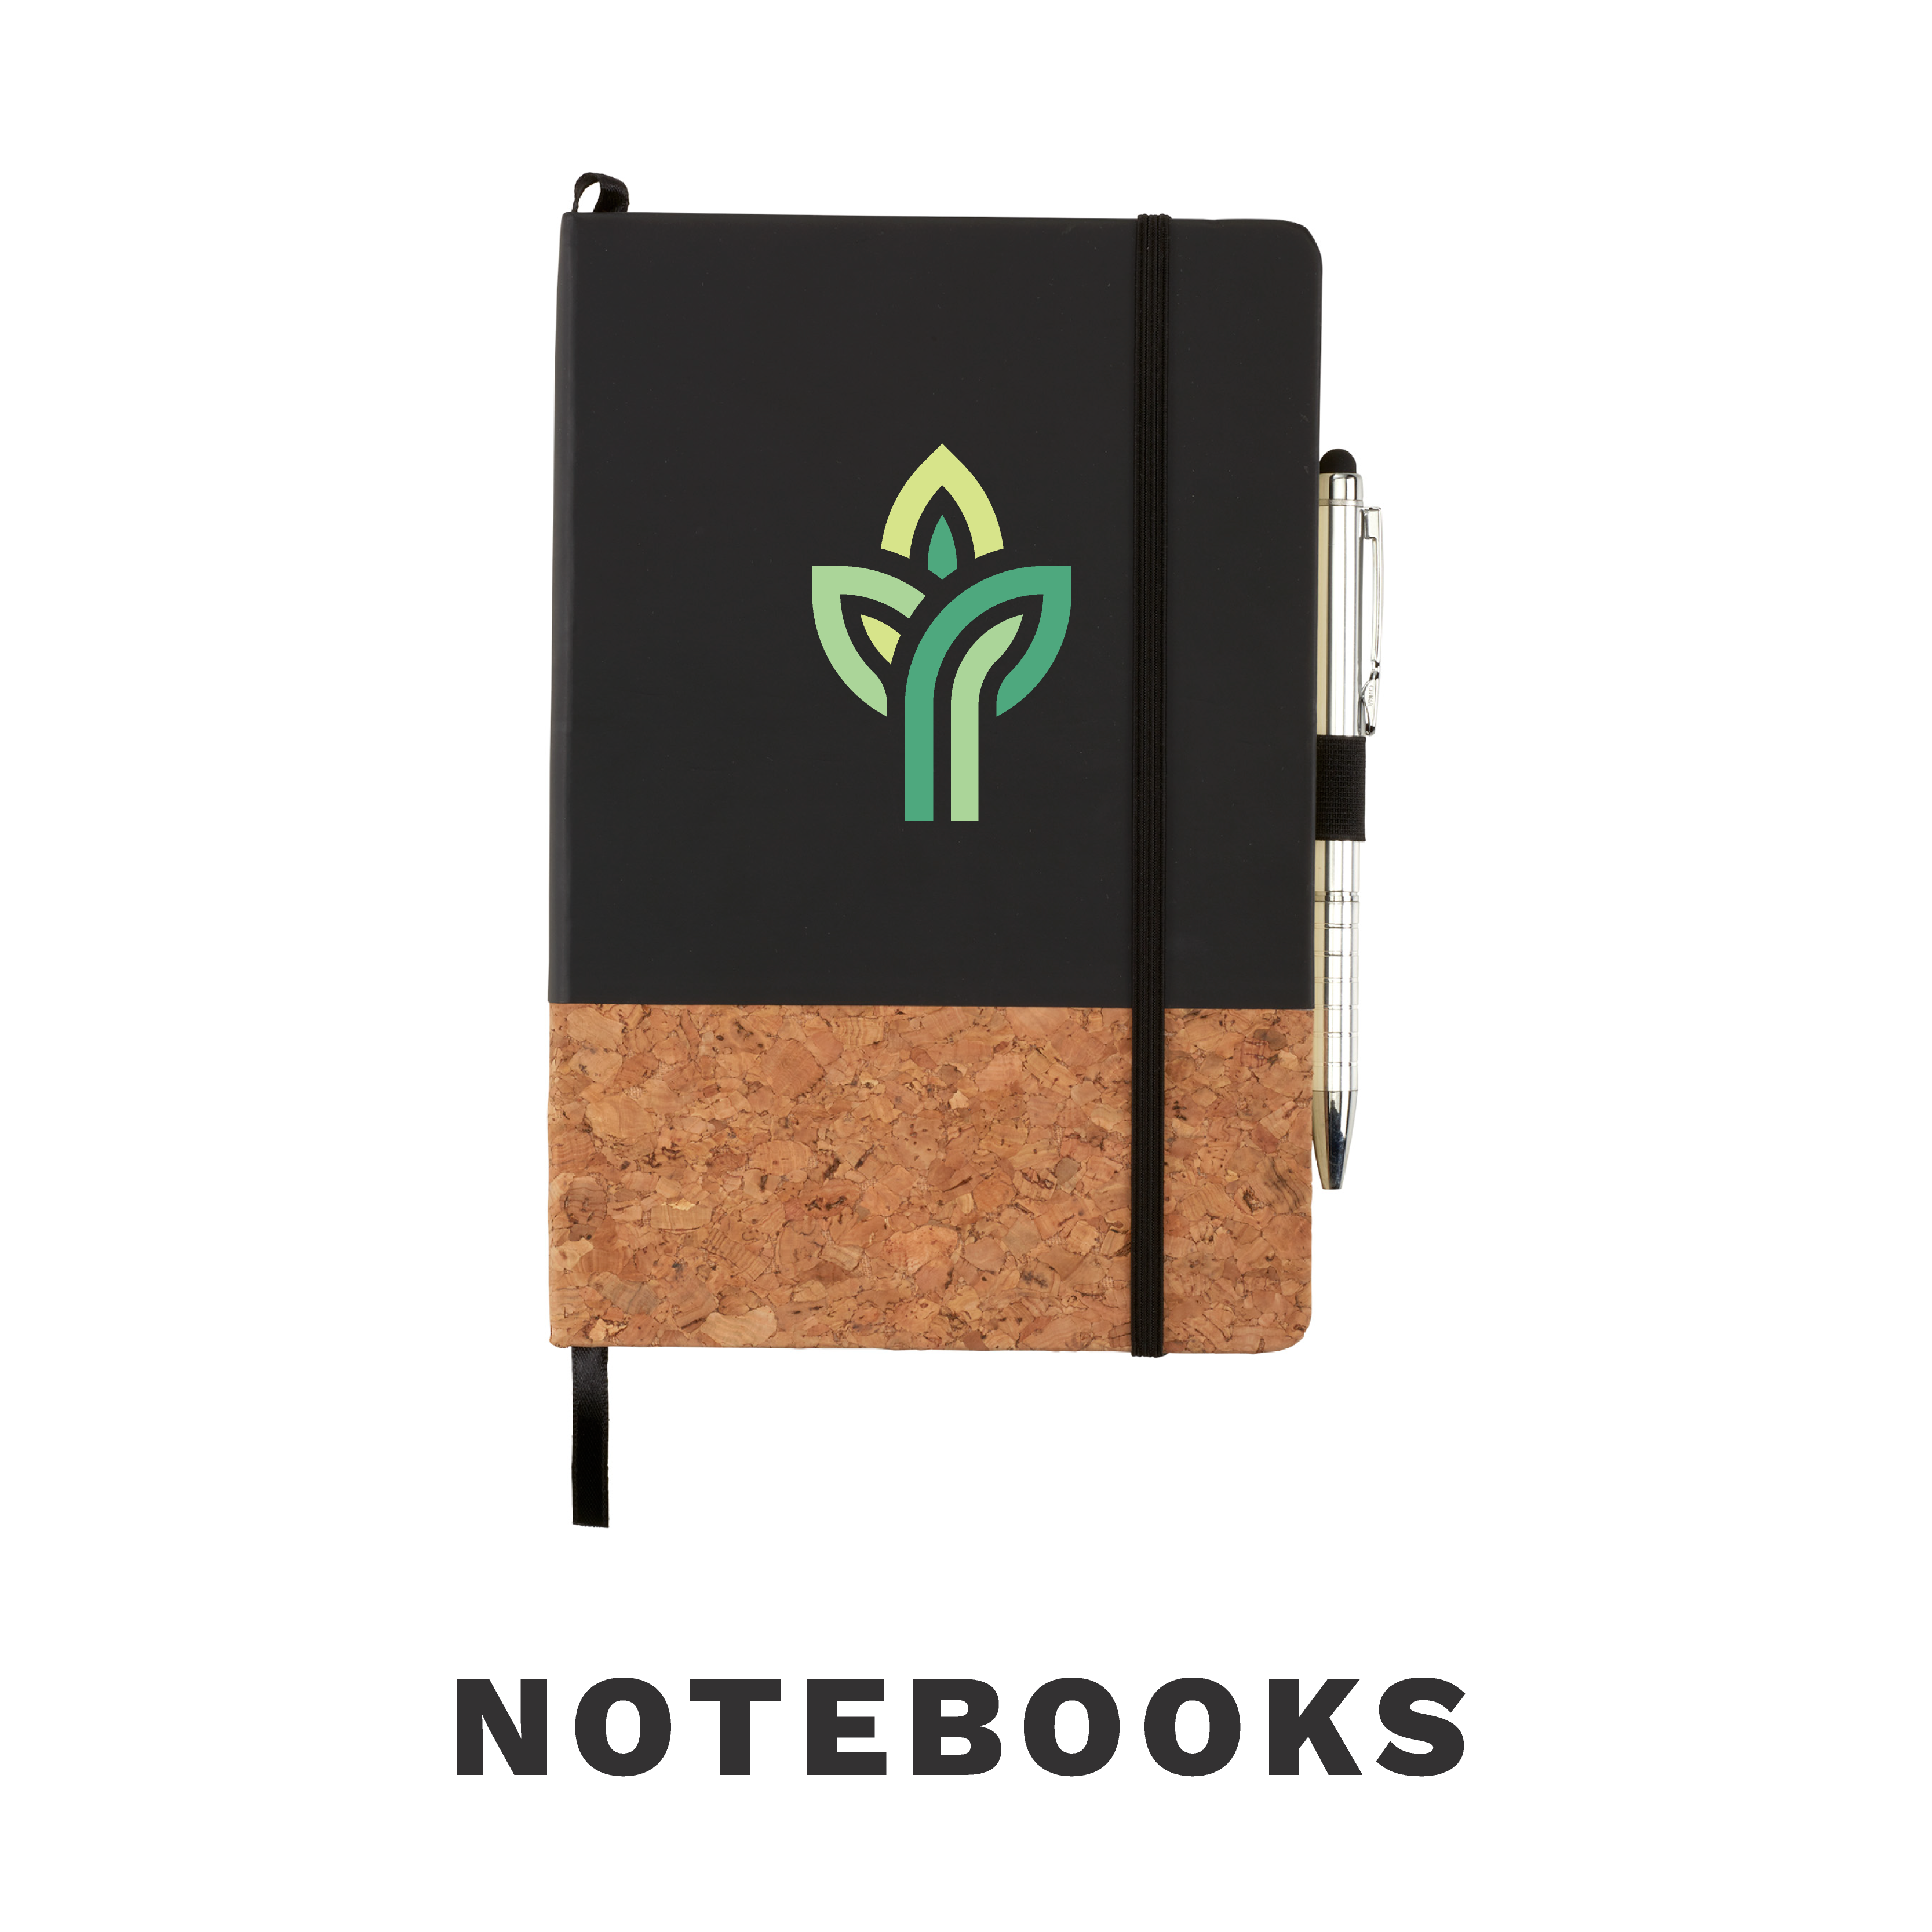 Your brand notebook